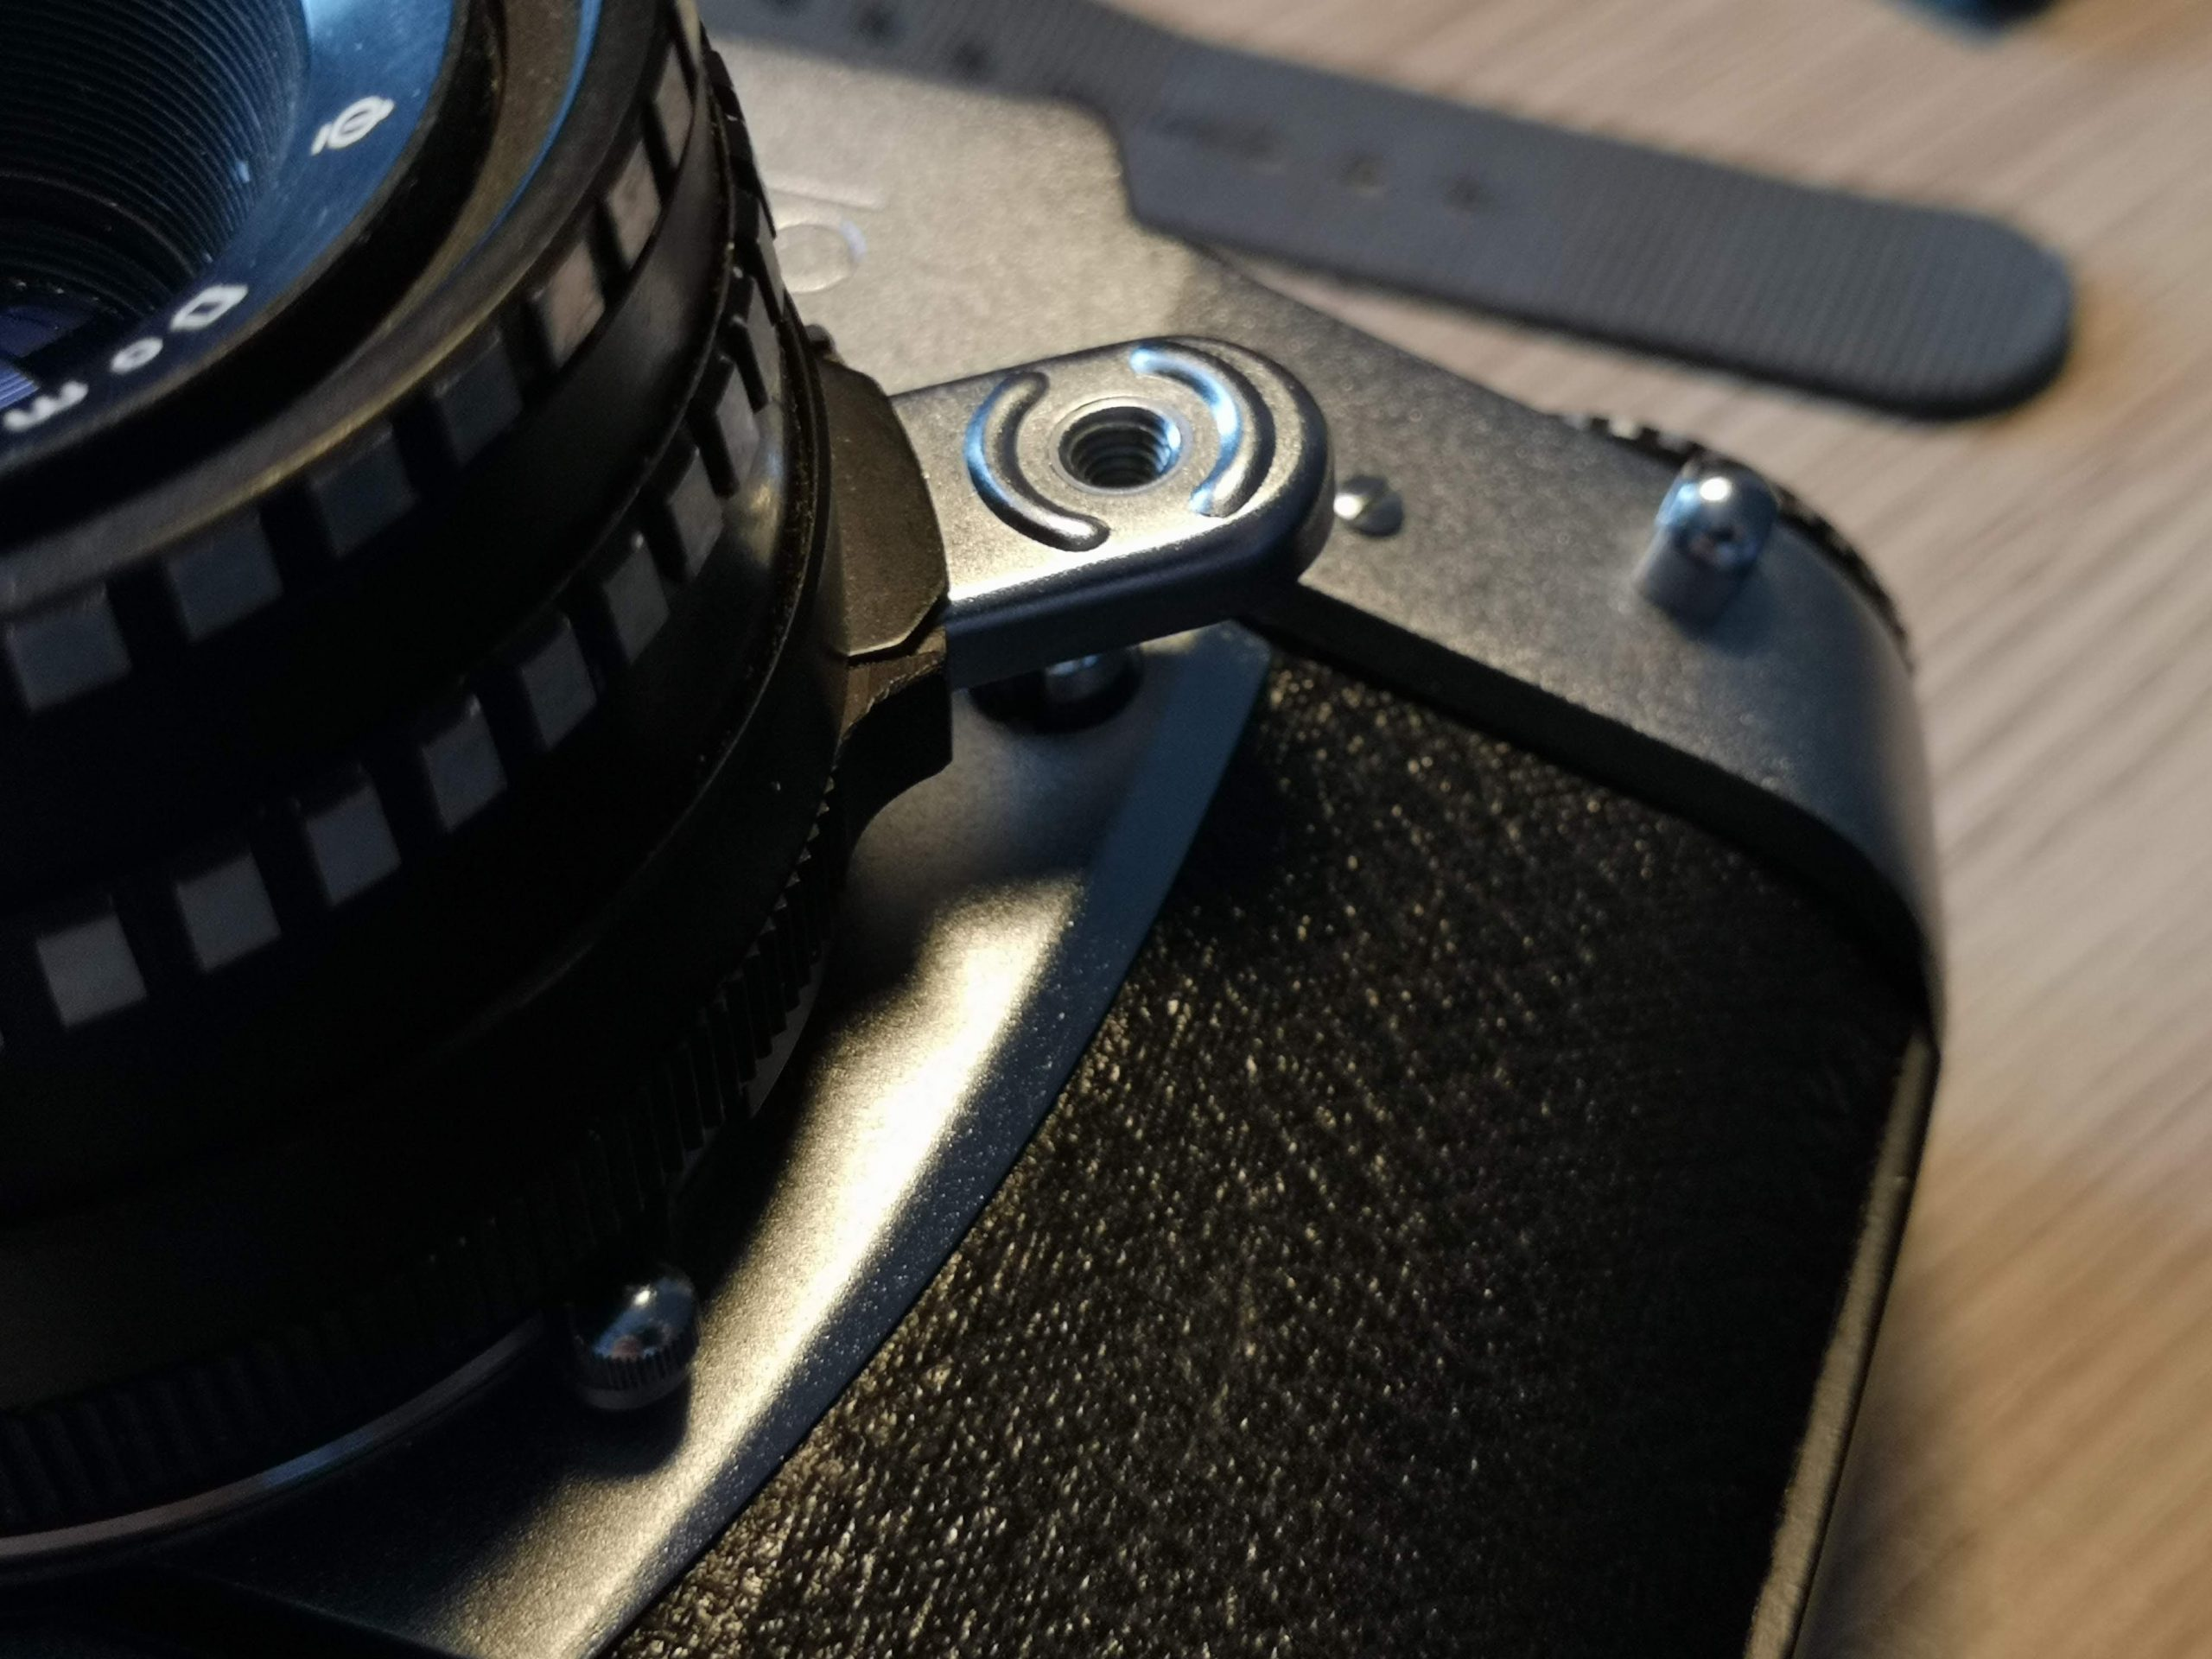 Stop down lever on an automatic Exakta lens